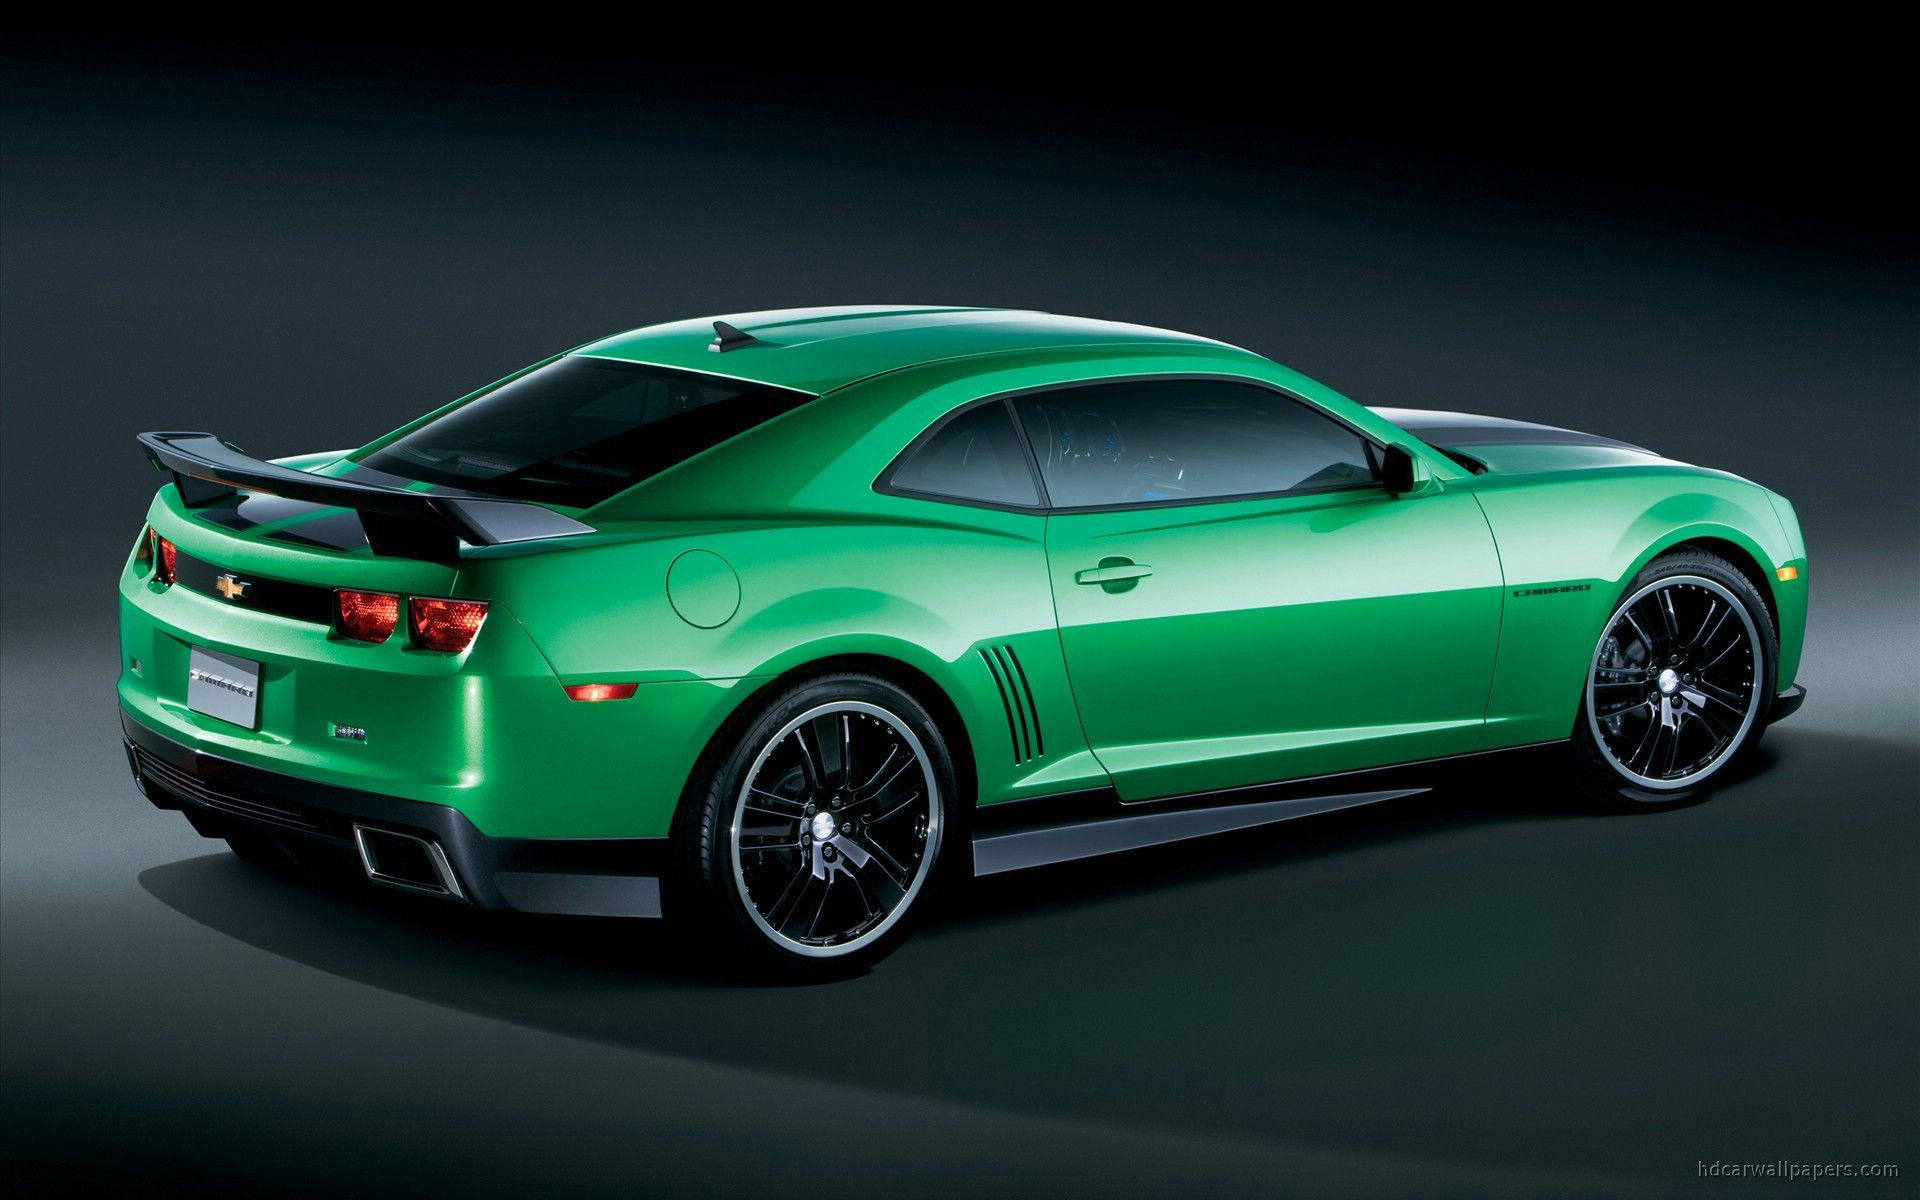 Chevrolet camaro synergy 2 hd wallpapers http www hdcarwallpapers in